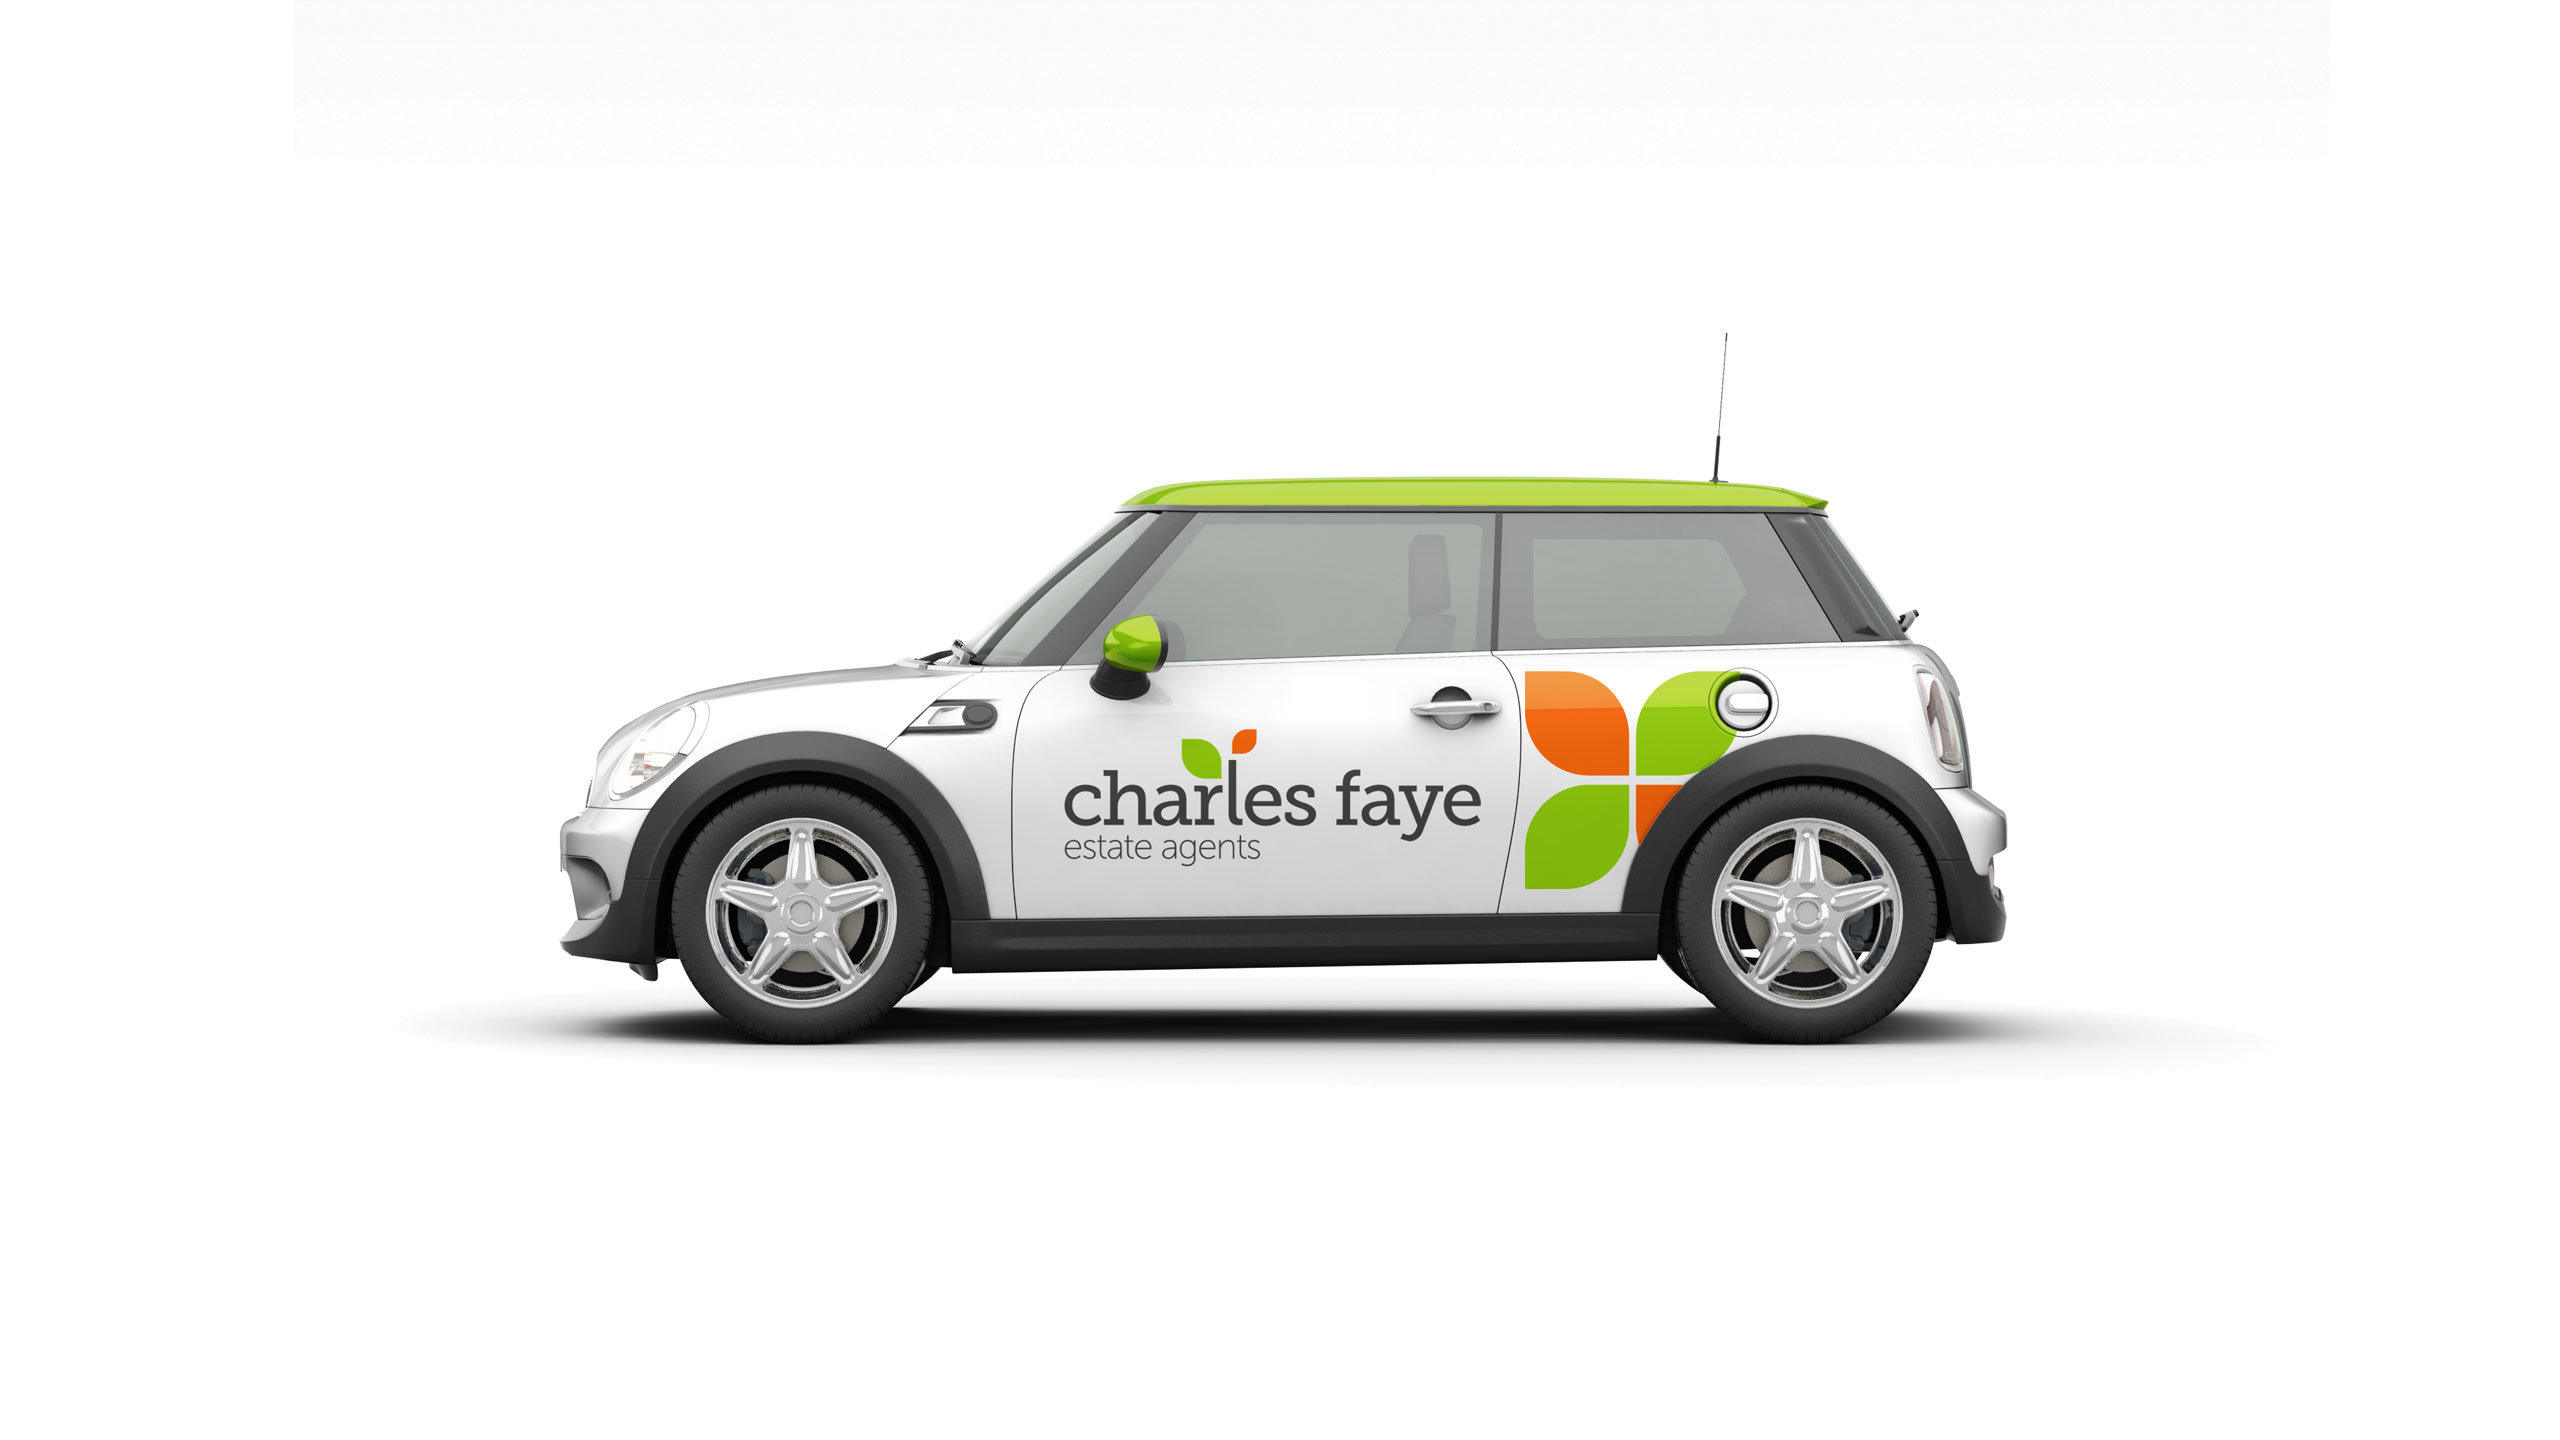 estate agent graphic design vehicle livery charles faye